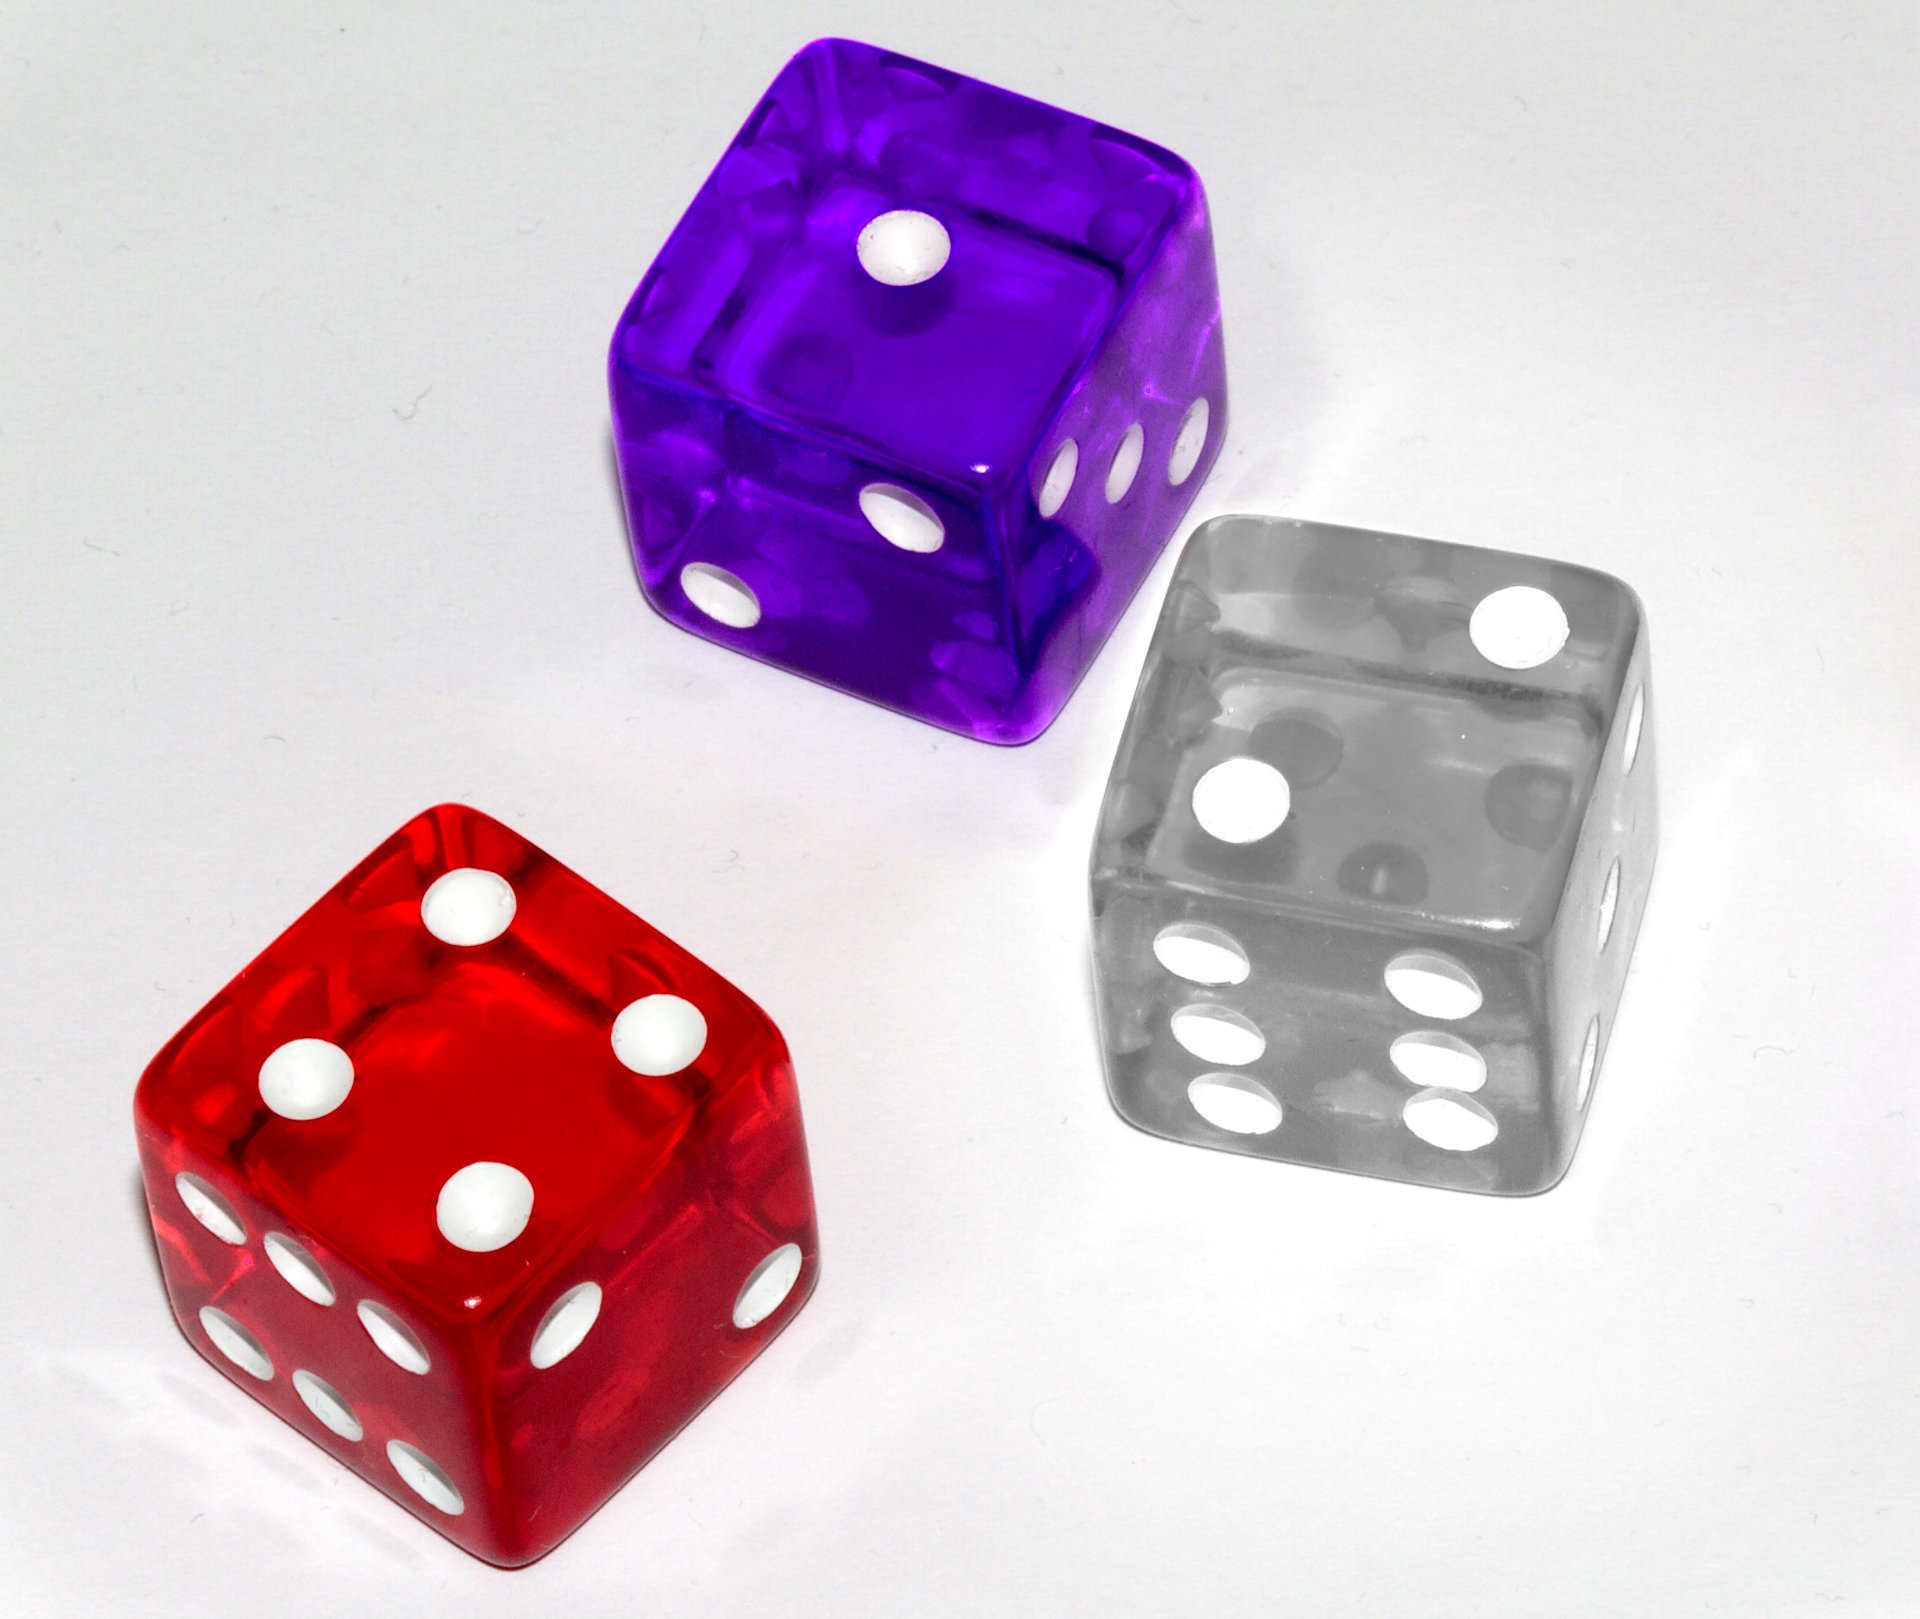 a photo of a red die, a purple die, and a silver die